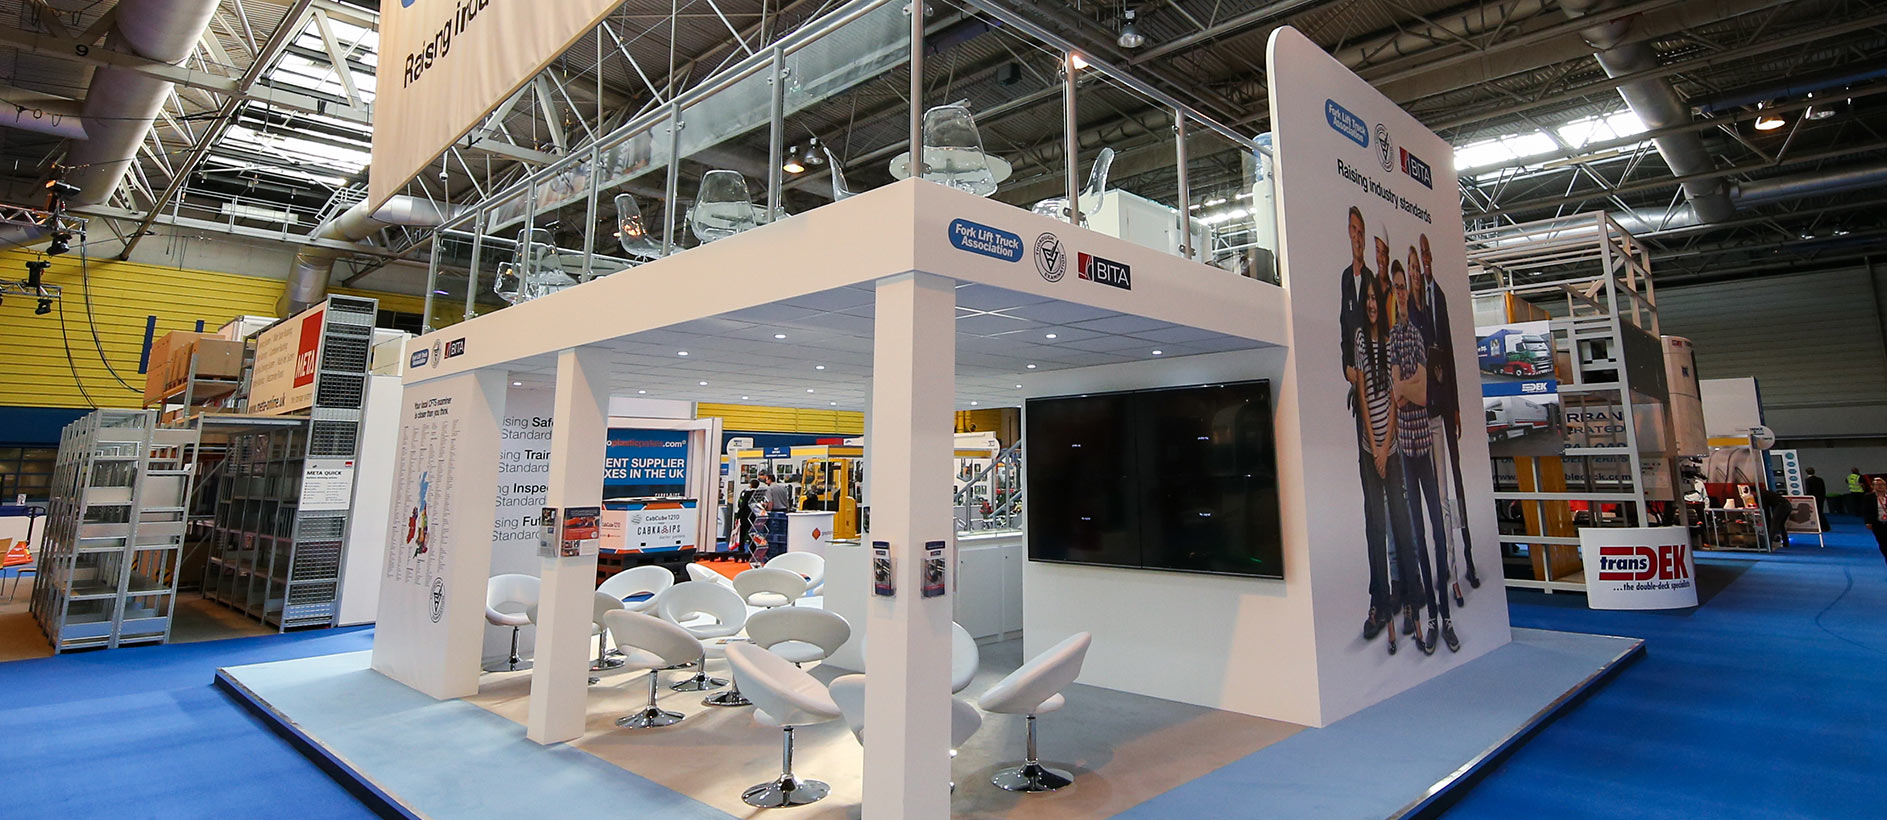 Custom exhibition stand display at IMHX